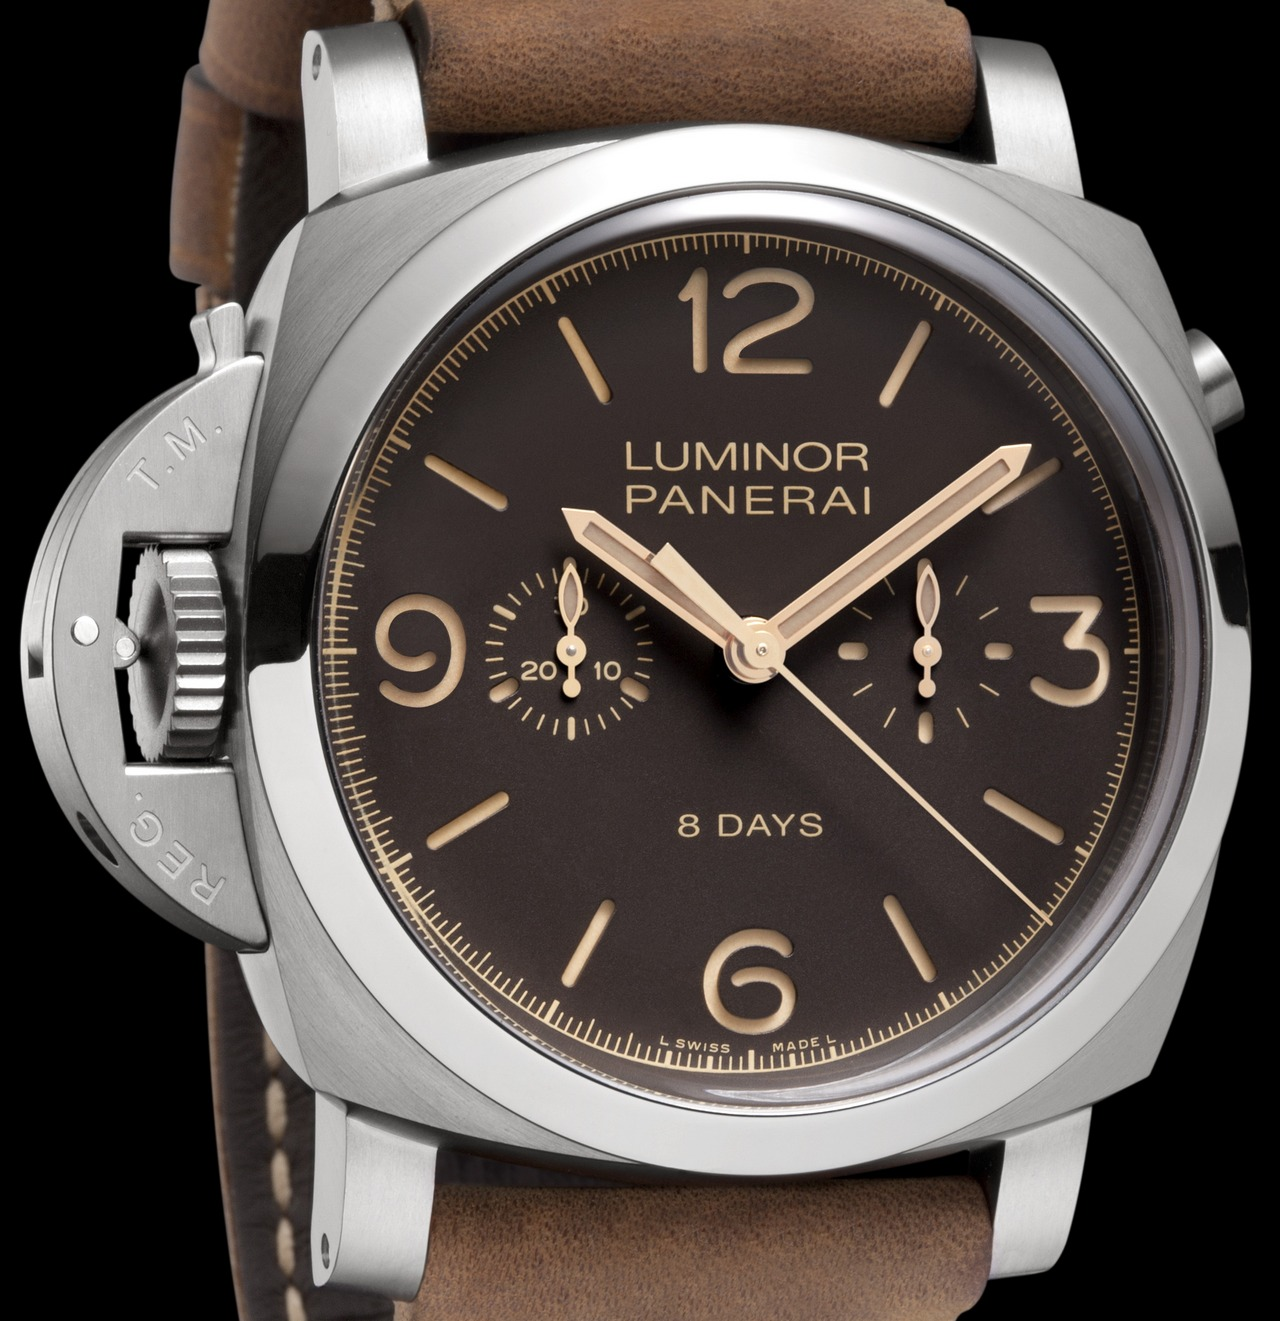 sihh-2014-officine-panerai-luminor-1950-chrono-monopulsante-left-handed-8-days-titanio-47mm-limited-edition-pam579-prezzo-price_0-100_4